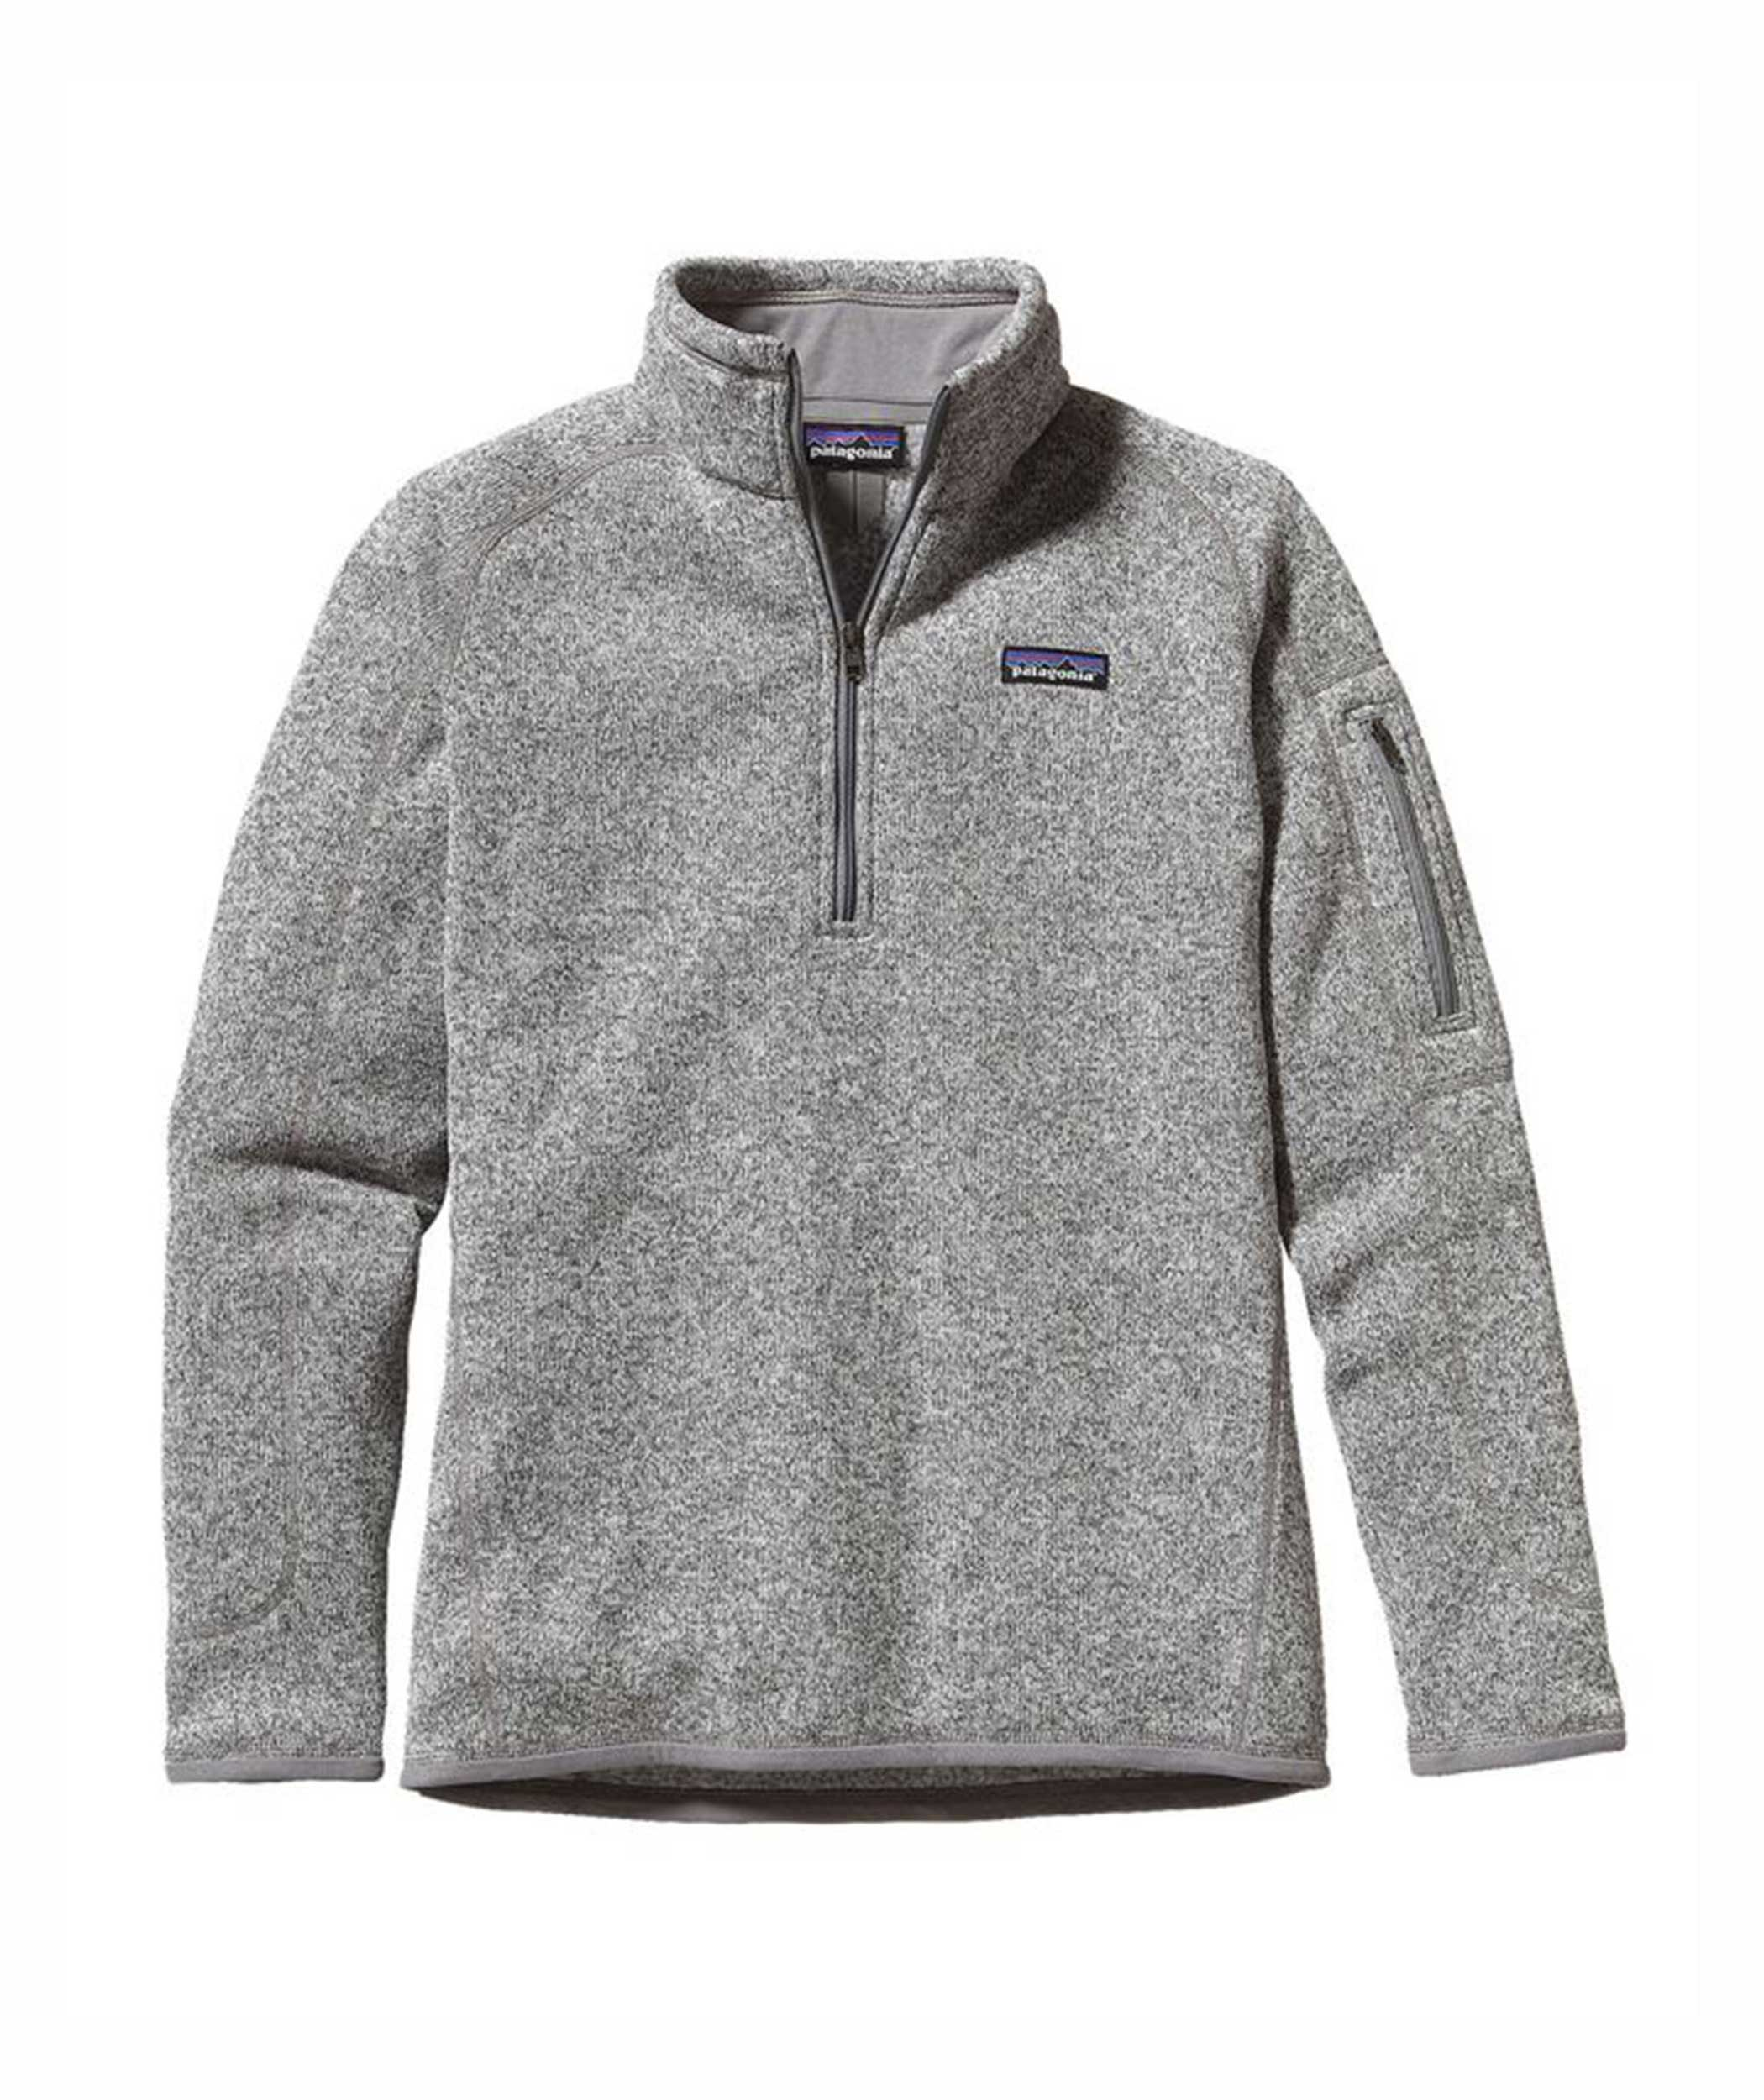 patagonia Better sweater jacket - I bought a jacket from Patagonia last year and in early Autumn and Spring, it's something I wear a lot whether that be walking the dogs or just inside the house. And Patagonia is a brand I not only love the aesthetic of but they're a really brilliant company in terms of sustainability which is what I want to try and support more with my clothing purchases. These jackets are perfect either worn alone on mild days but they make a great base layer underneath a coat for when it's really cold. They have a huge range of beautiful shades to choose from but I think the classic grey is what will work best with my wardrobes colour palette.